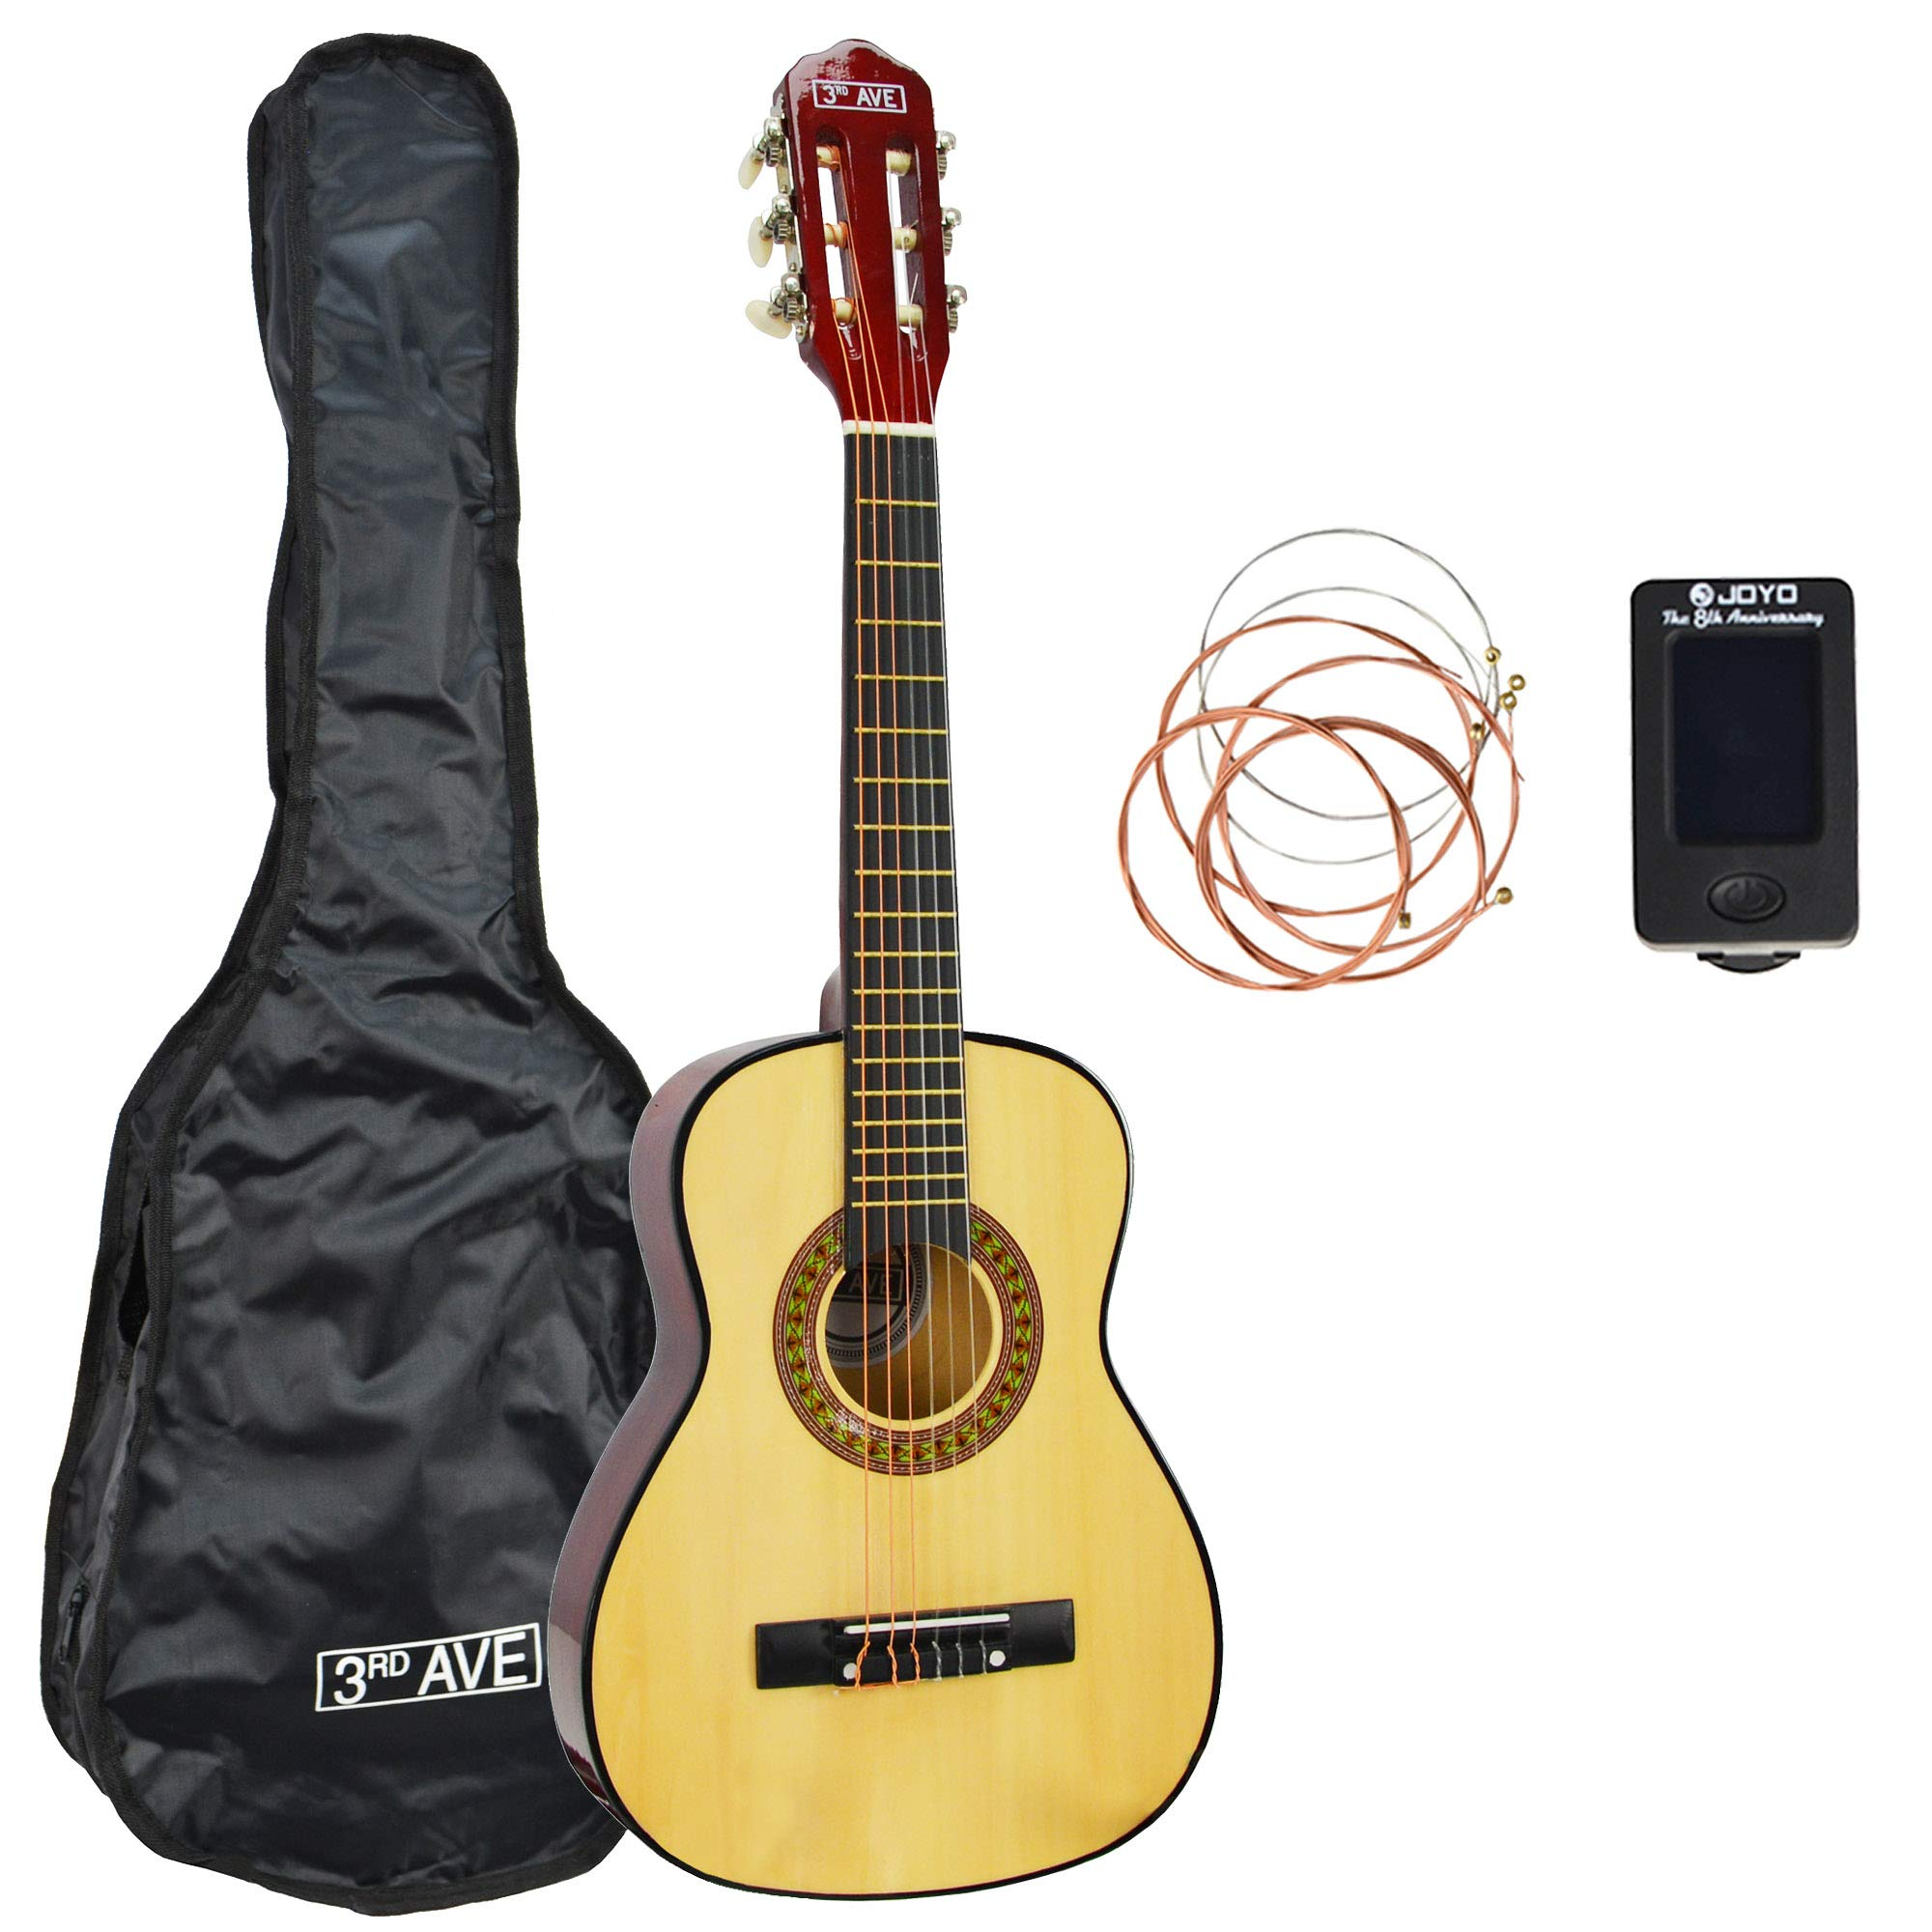 3rd Avenue Classical 1/4 Size Guitar Starter Pack - Natural